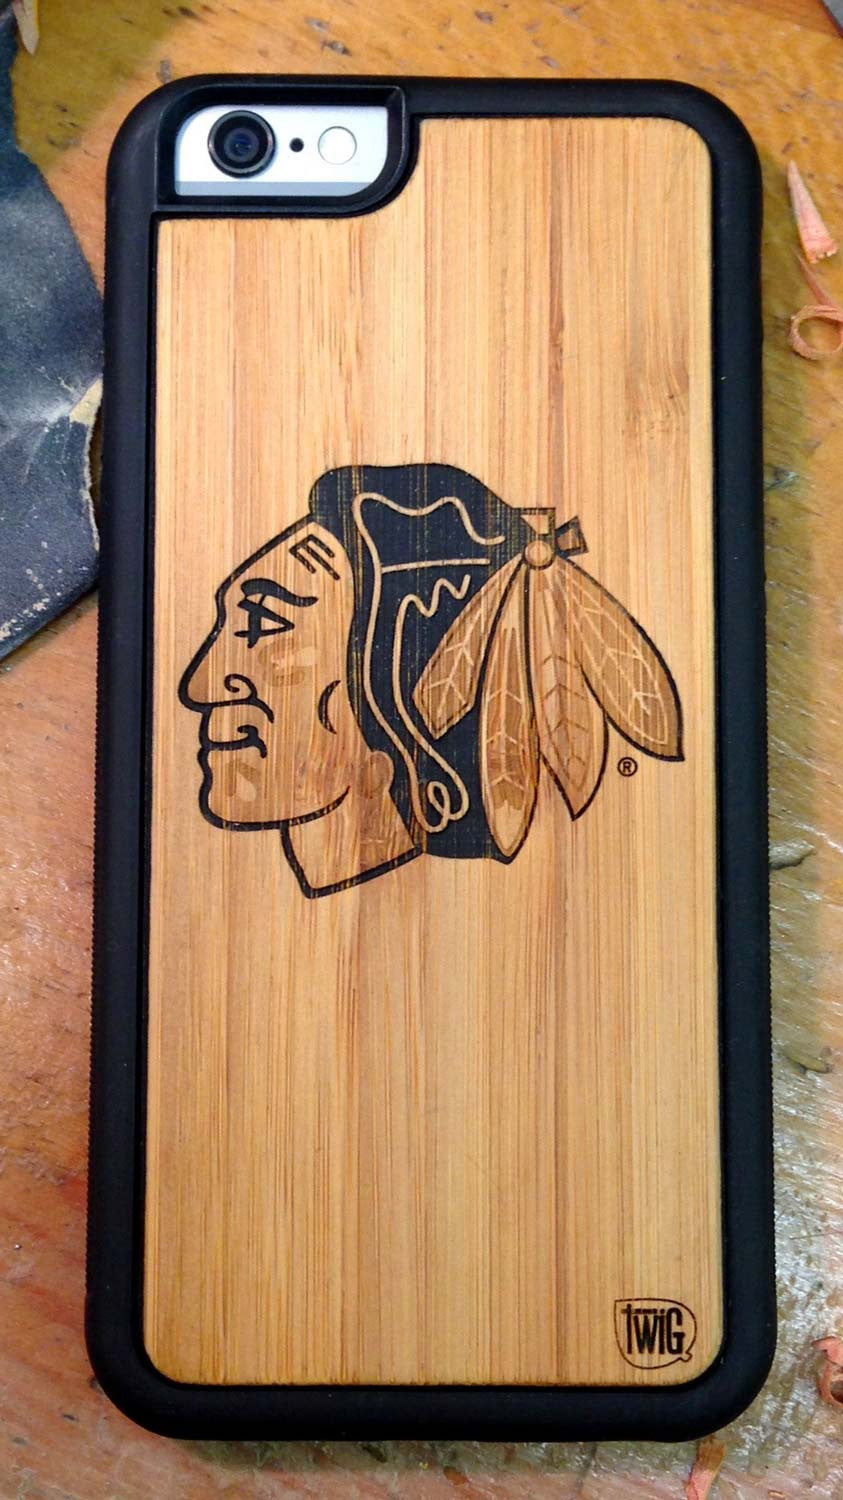 Chicago Blackhawks - Case for iPhone 6/6s & Plus, Case for iPhone 6/6s & Plus - Twig Case Co.